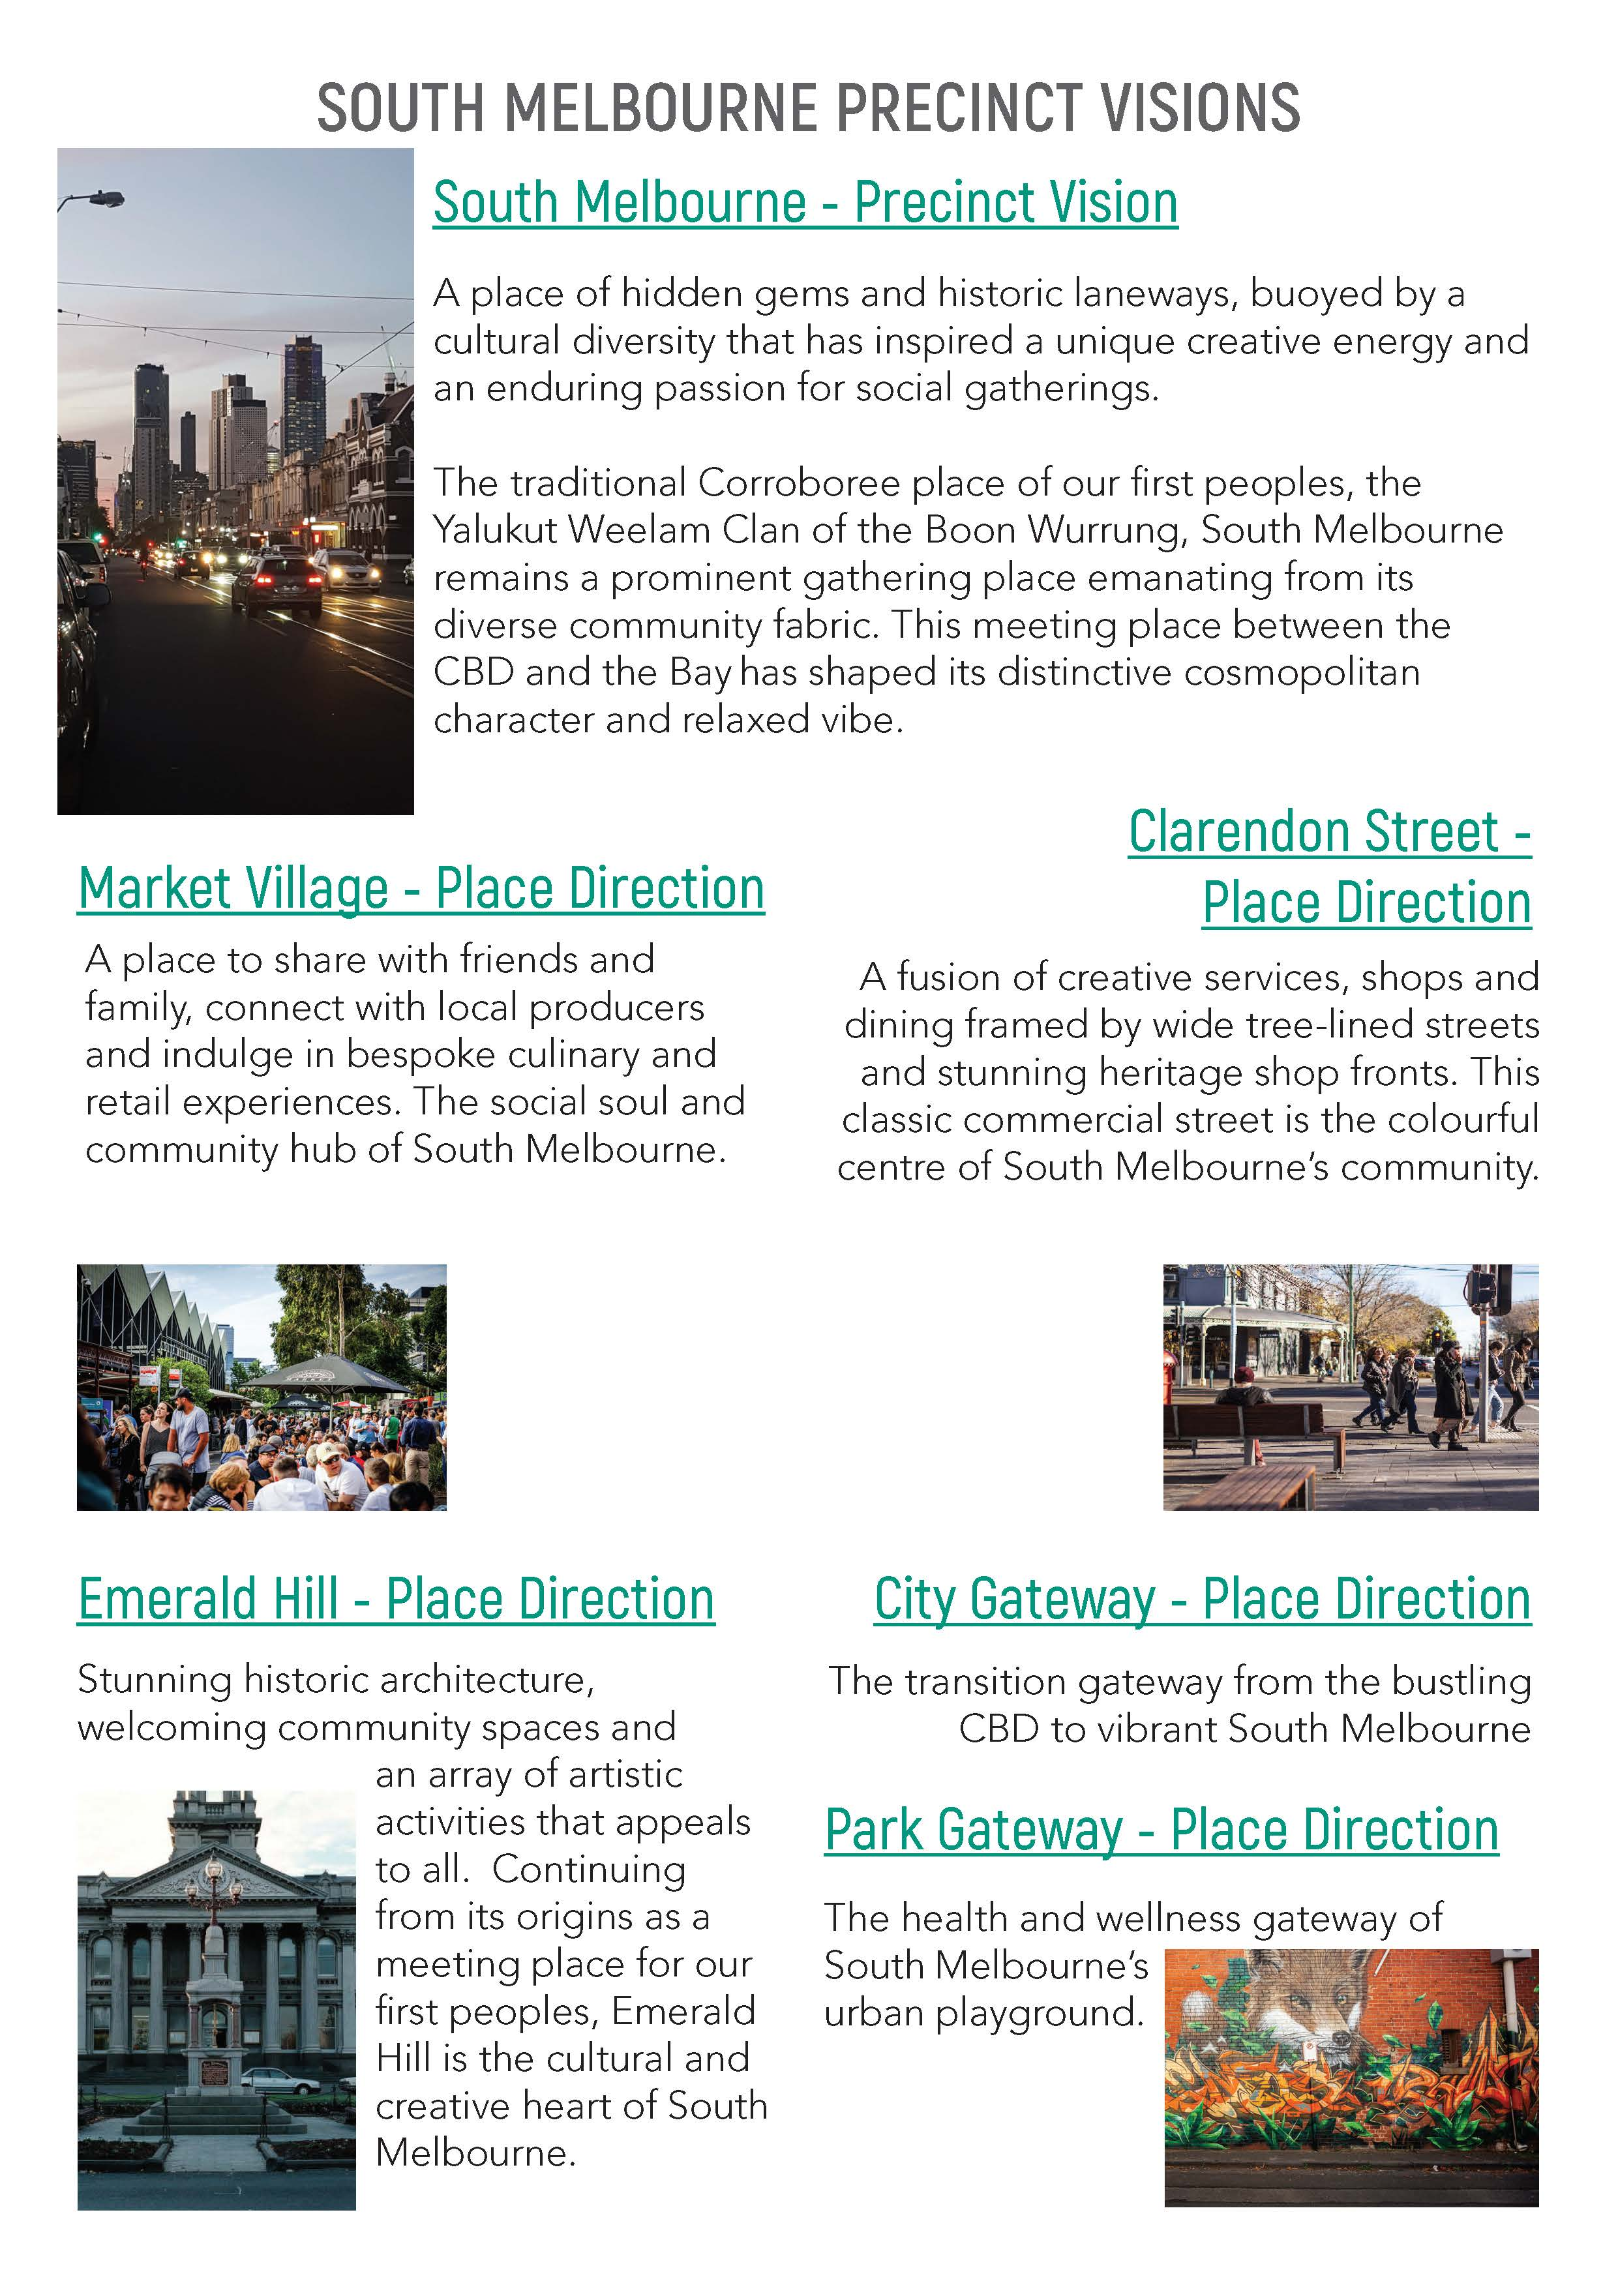 Text of all draft vision and place direction for South Melbourne